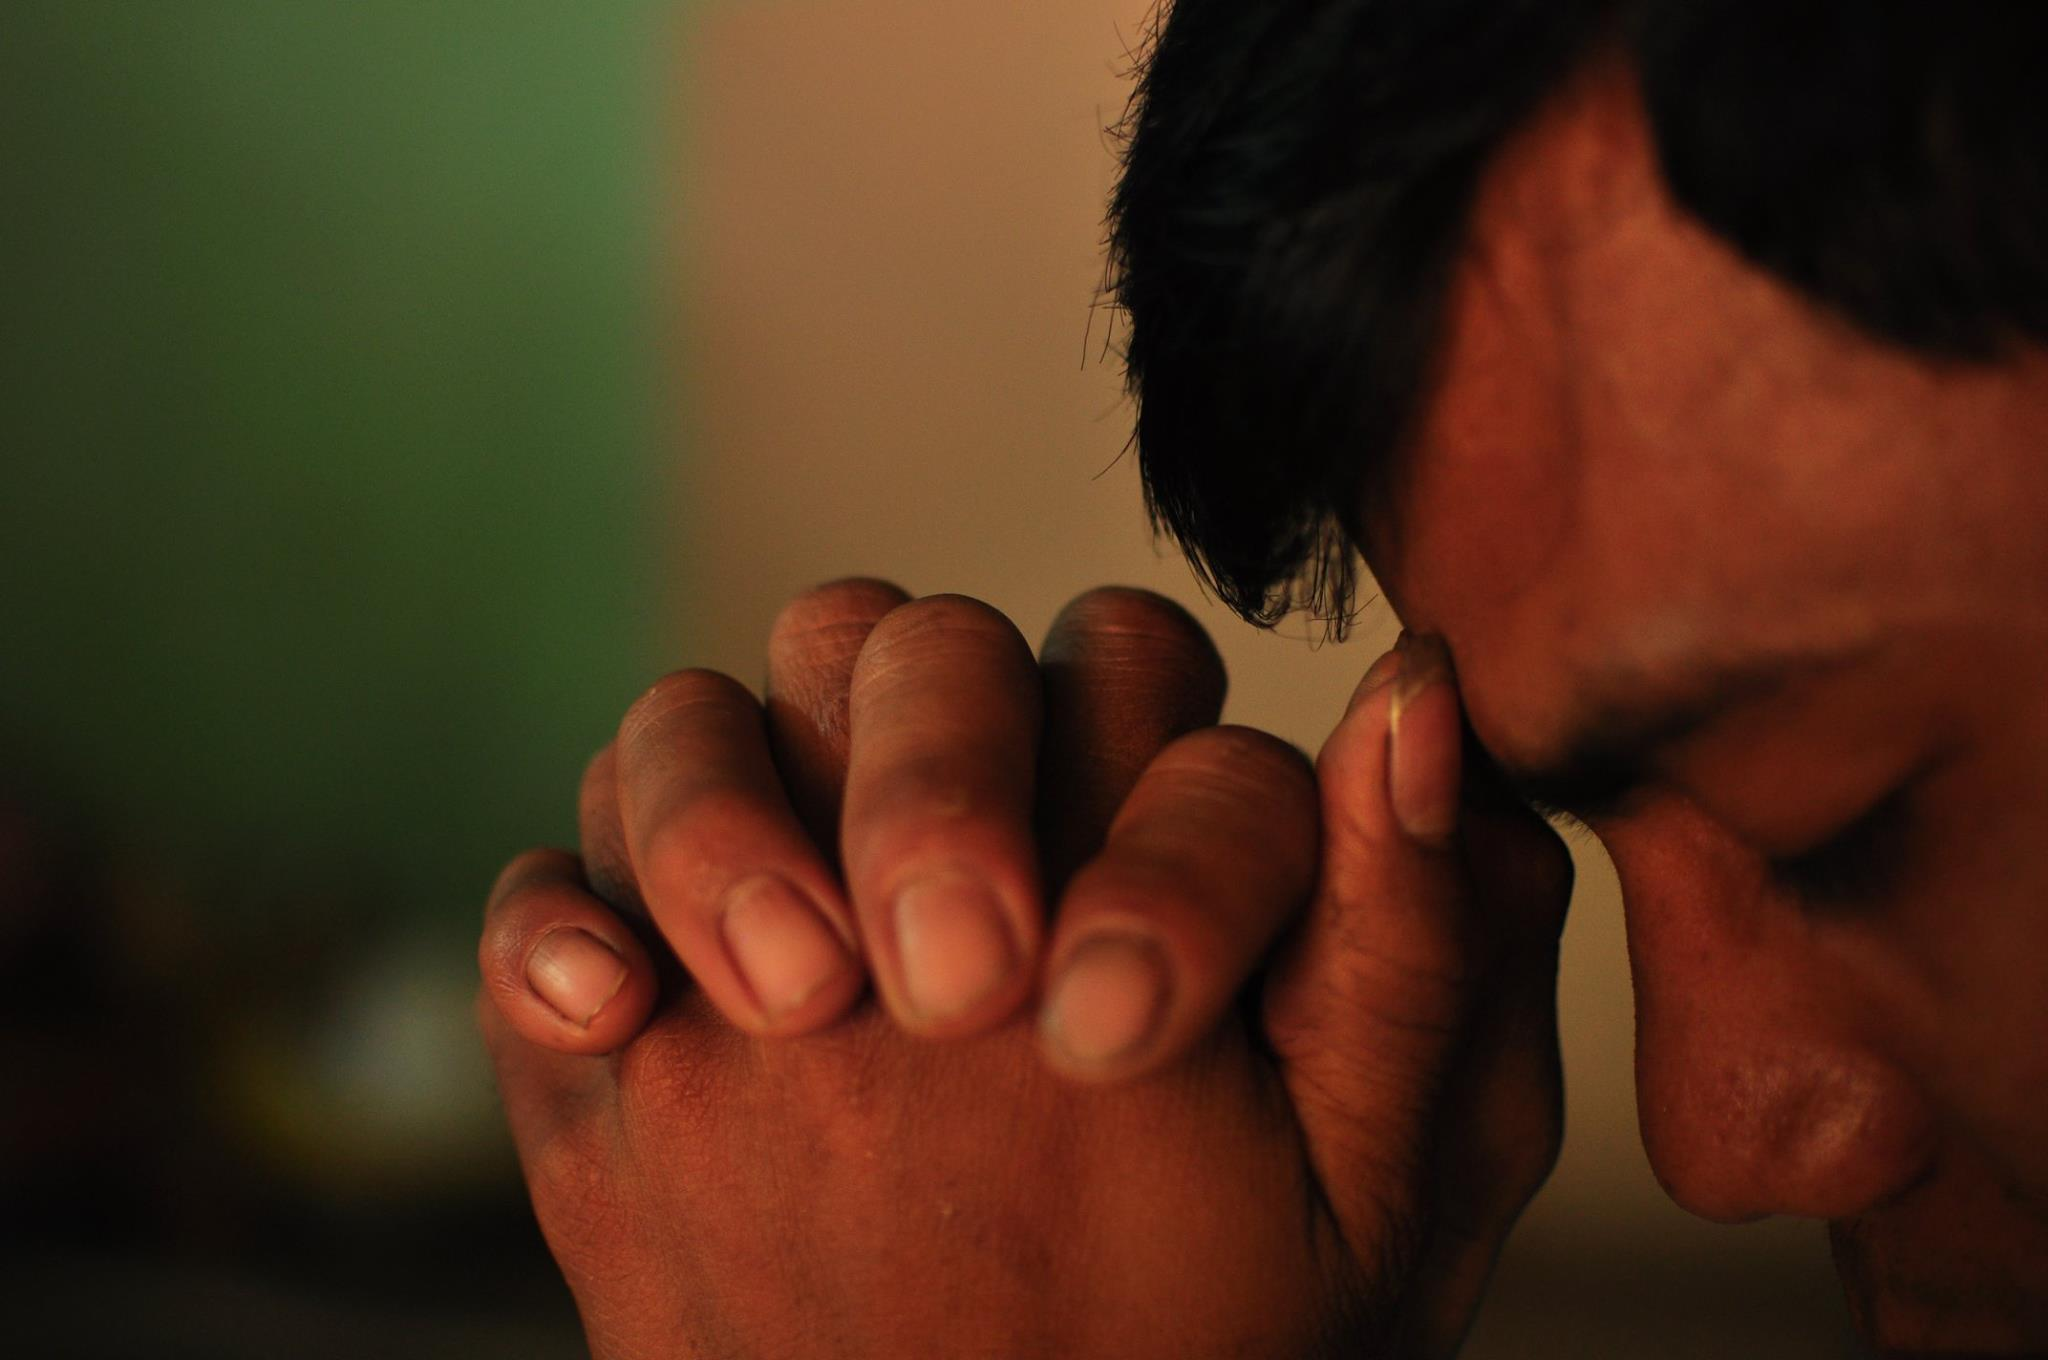 Nepal implements anti-conversion law, prayer needed